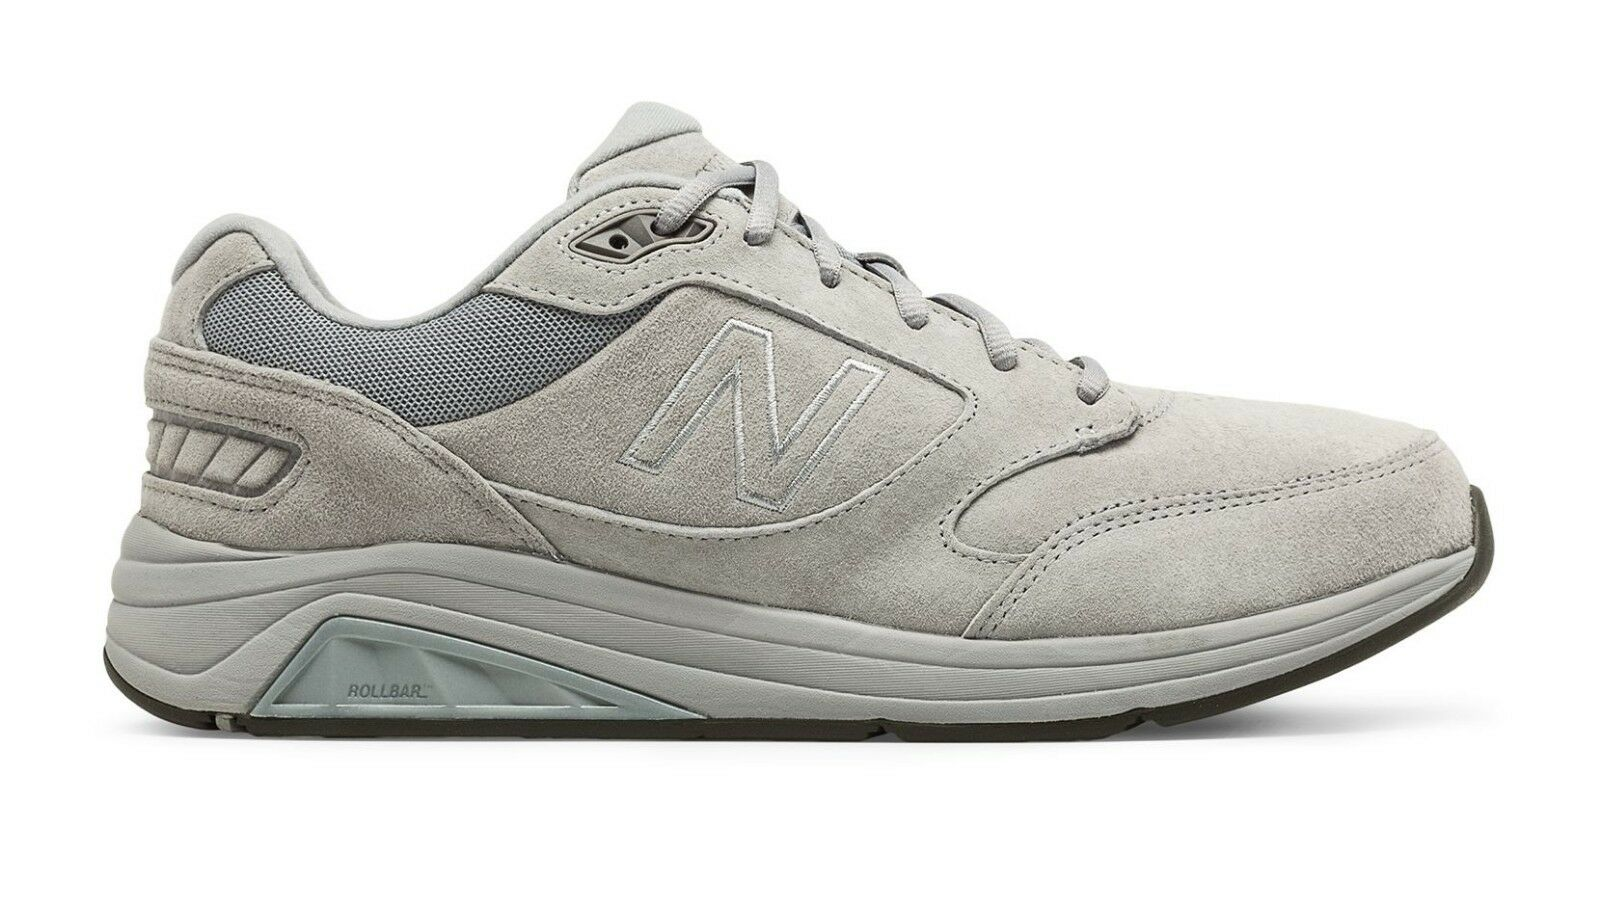 New Balance MW928GY3 Men's 928v3 Gray Suede Control Health Walking Shoes New